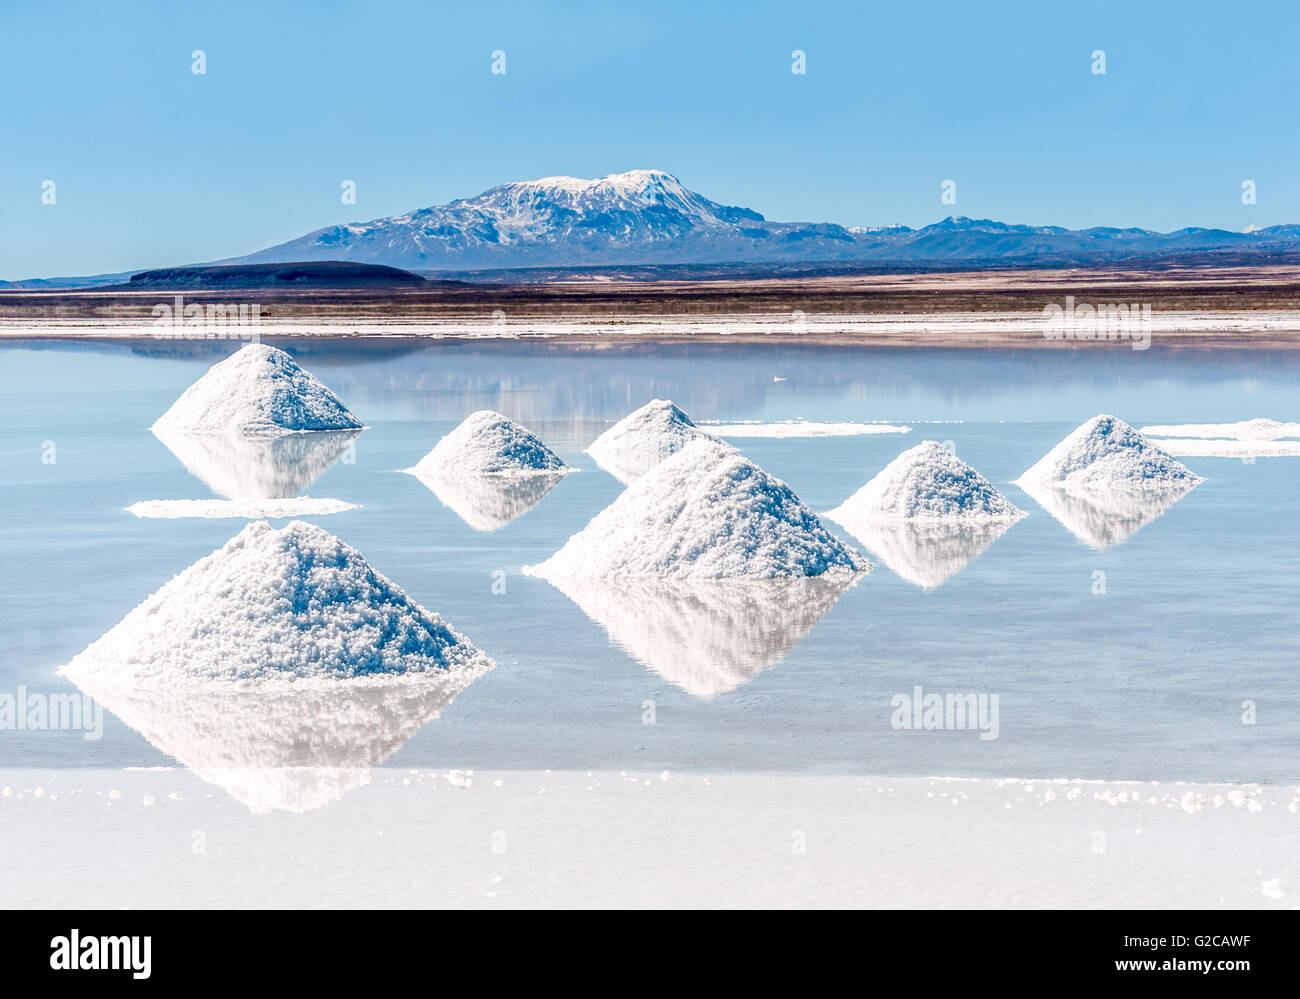 Salt Lake - Salar de Uyuni en Bolivie Photo Stock